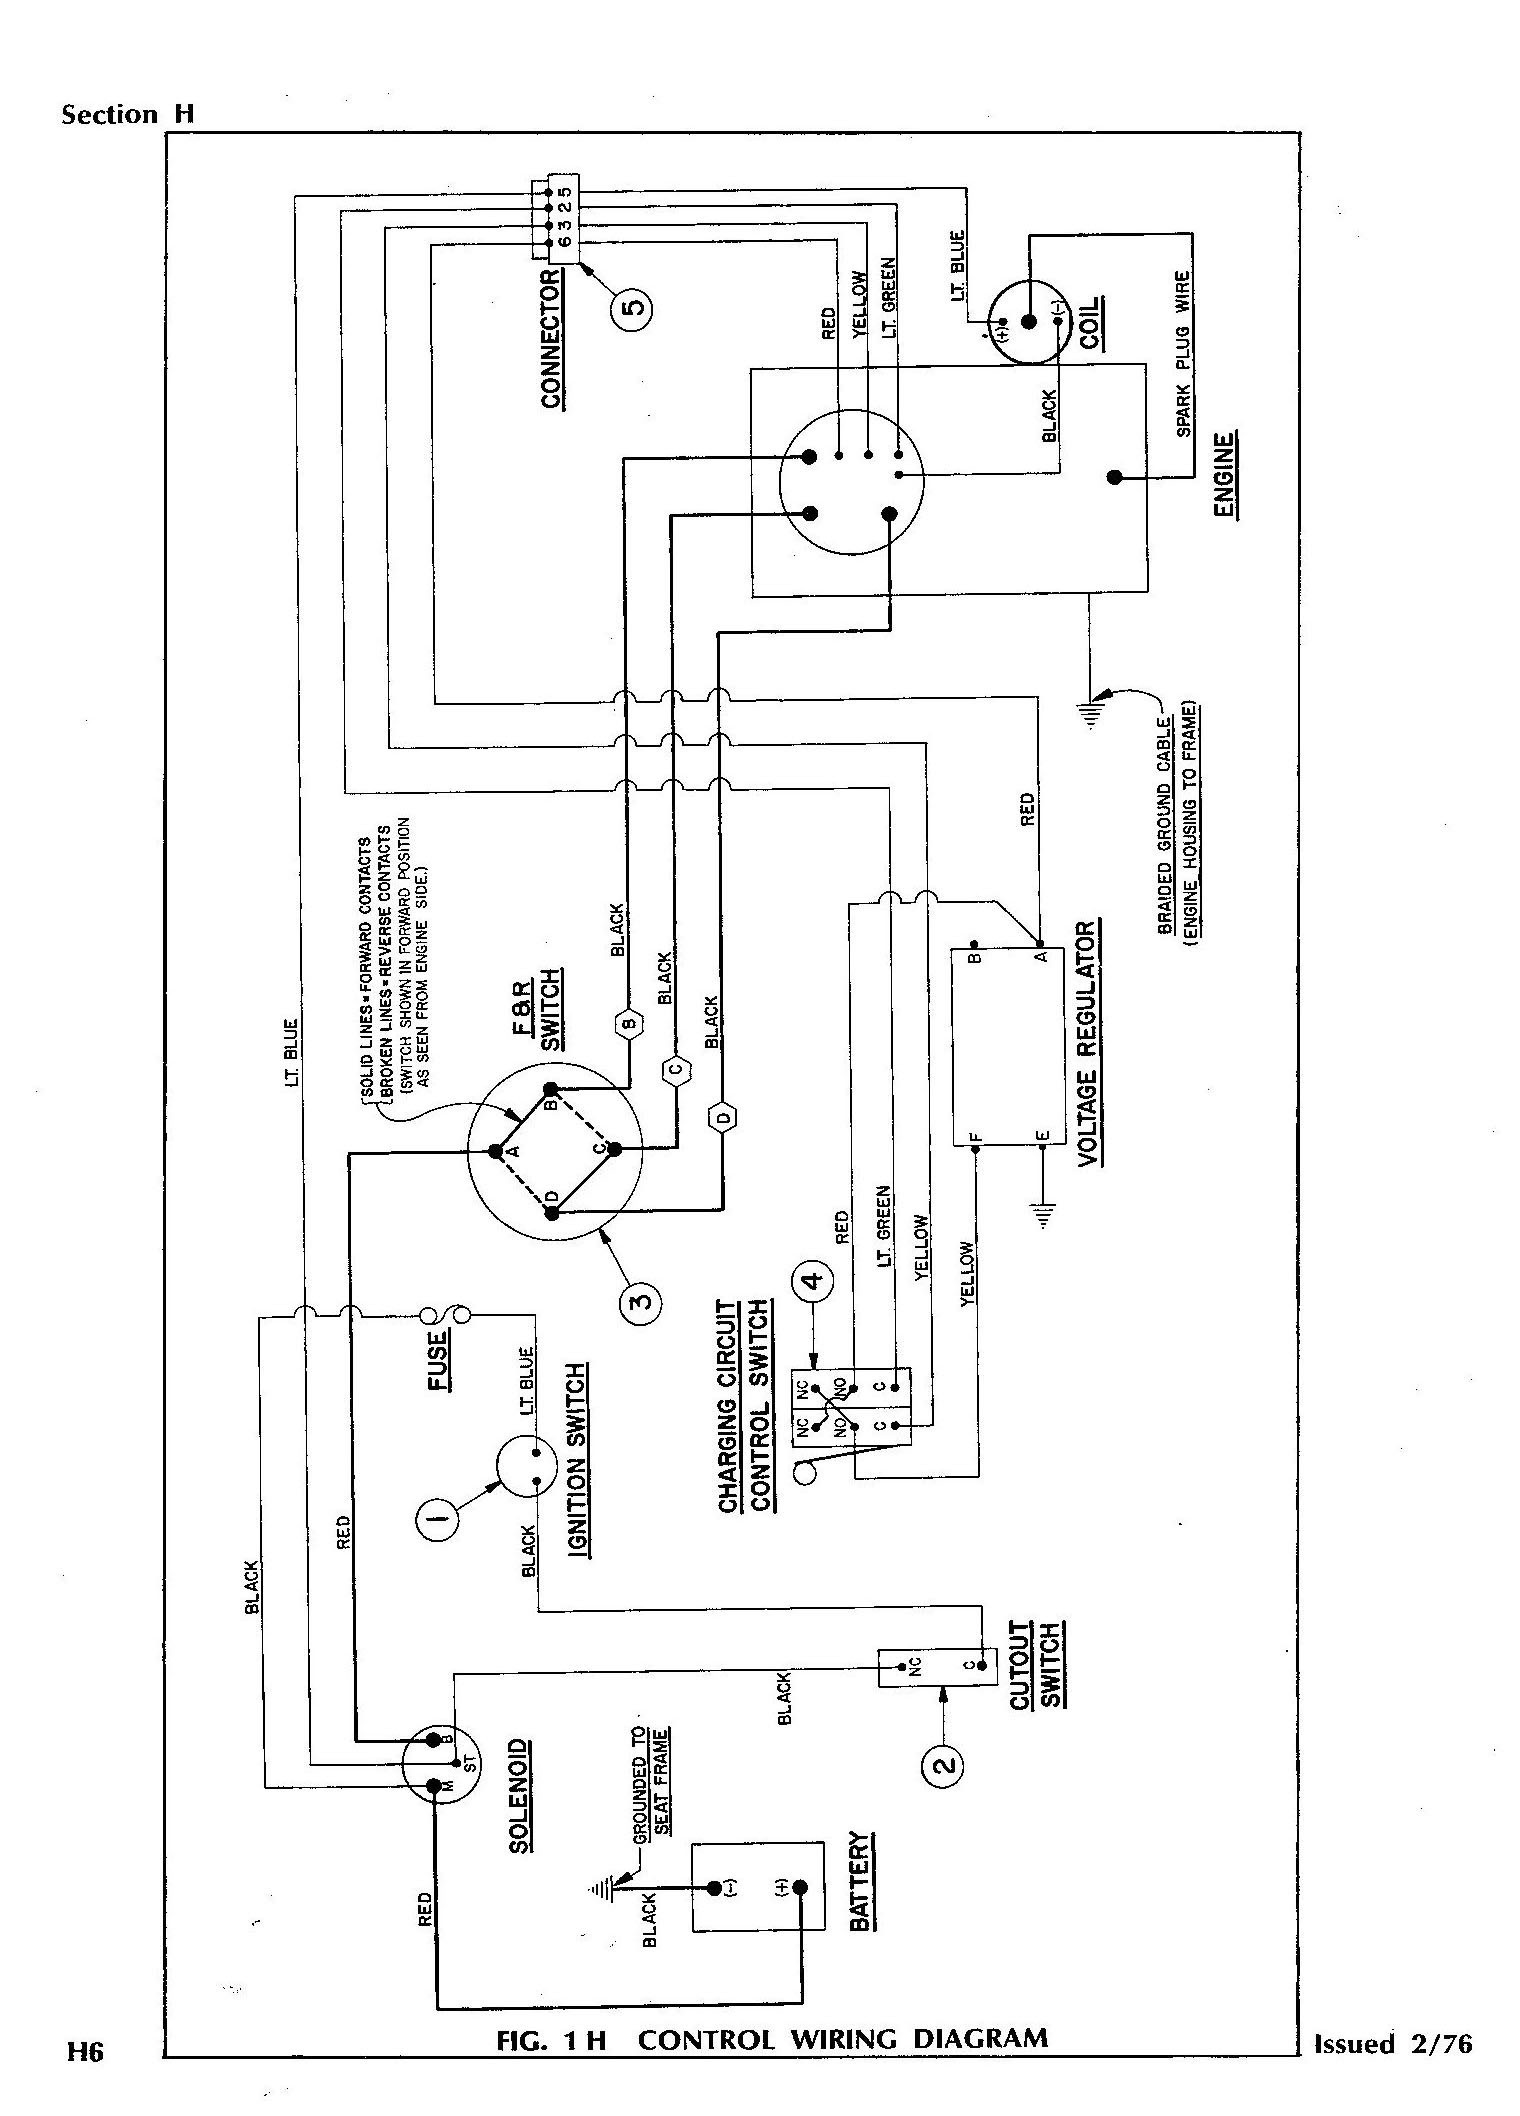 Harley Golf Cart Wiring Diagram For 79 Harley Davidson